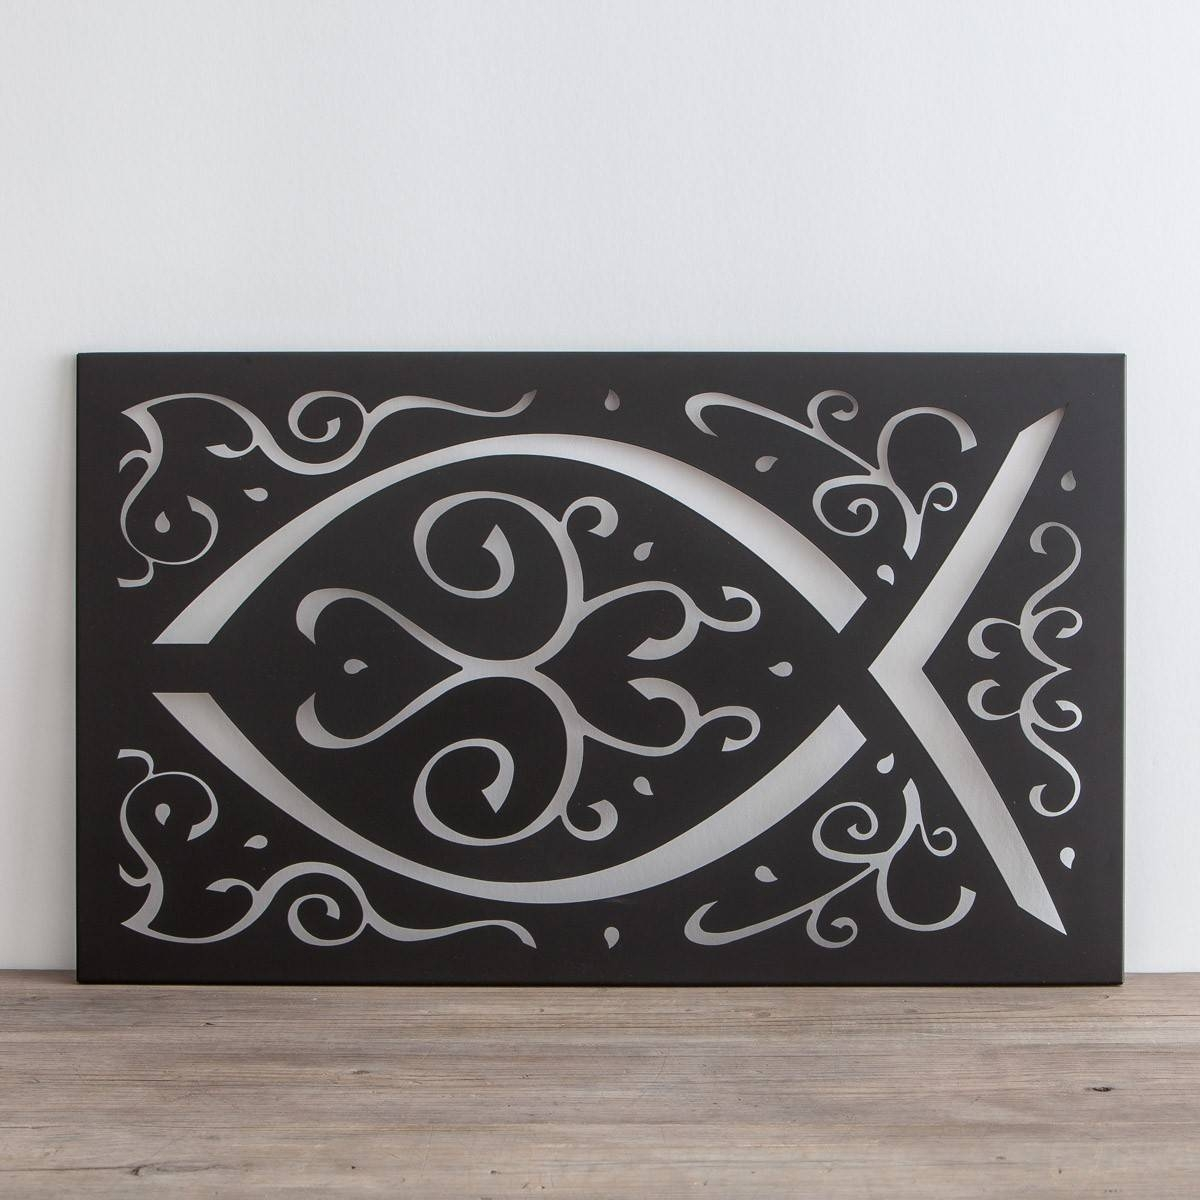 Ichthys – Metal Wall Art | Dayspring With Regard To Best And Newest Black And White Metal Wall Art (View 6 of 20)